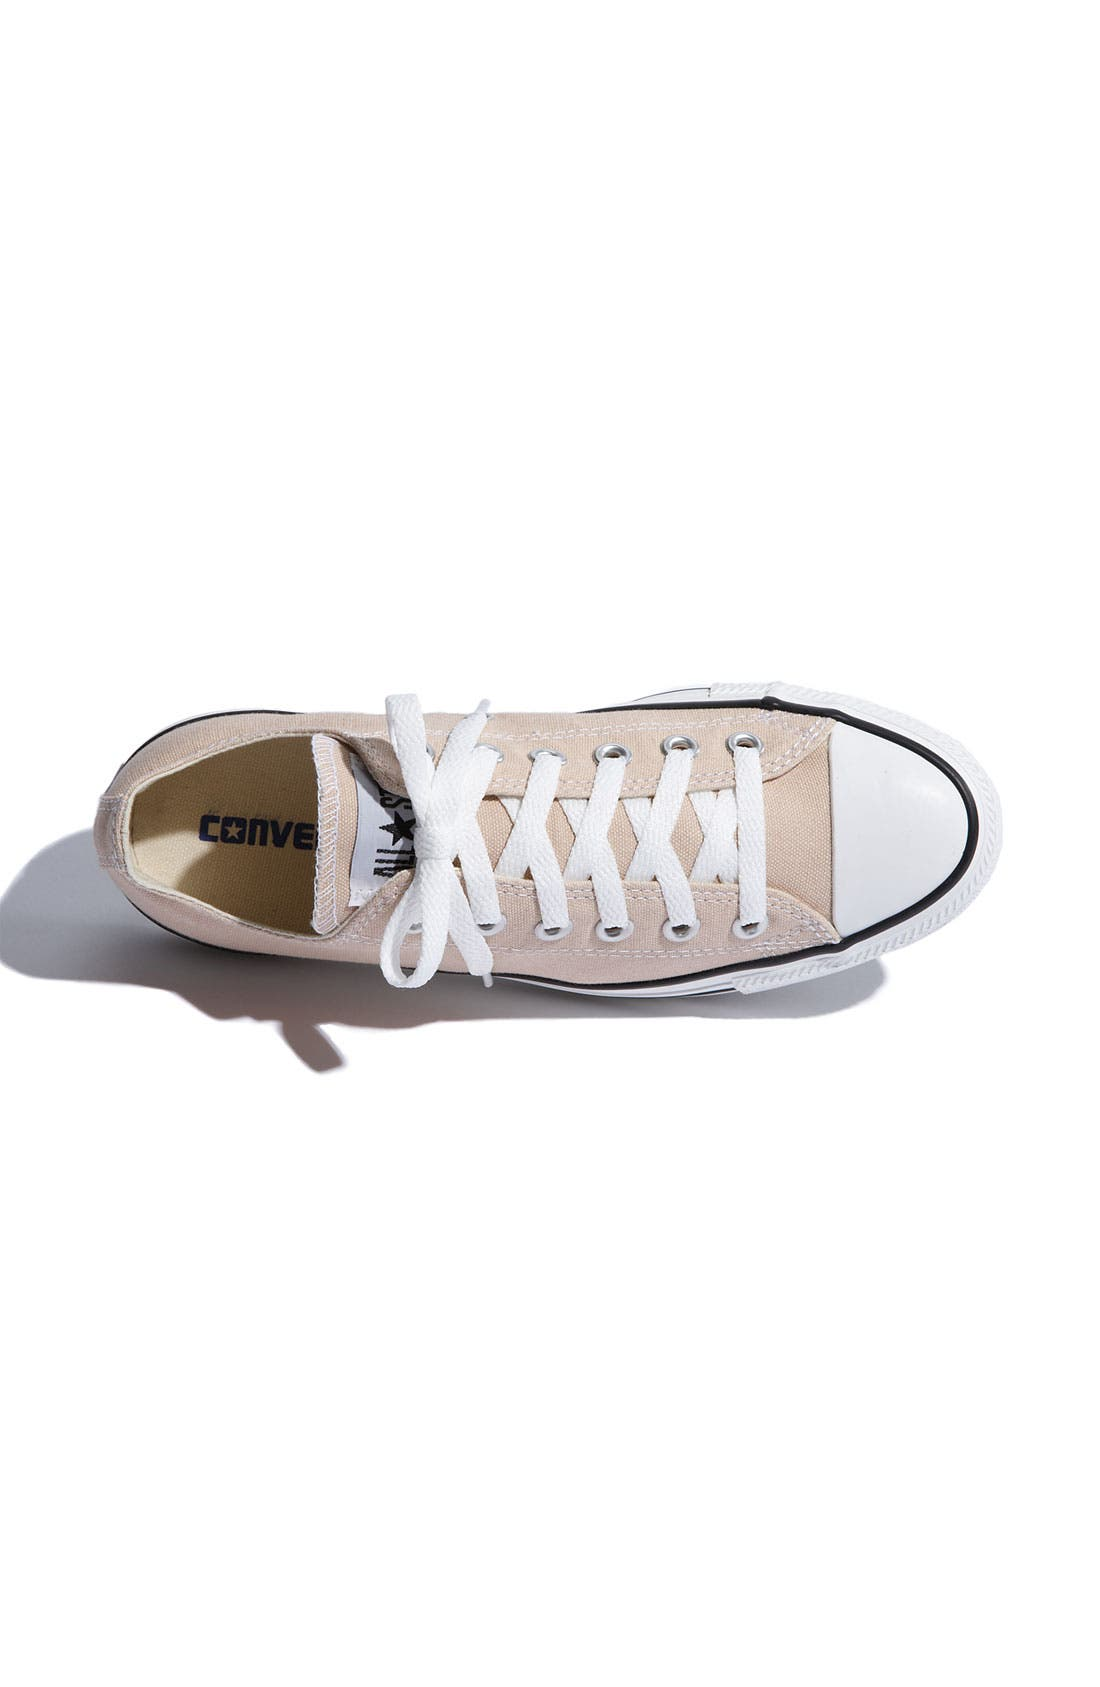 Chuck Taylor<sup>®</sup> Low Sneaker,                             Alternate thumbnail 137, color,